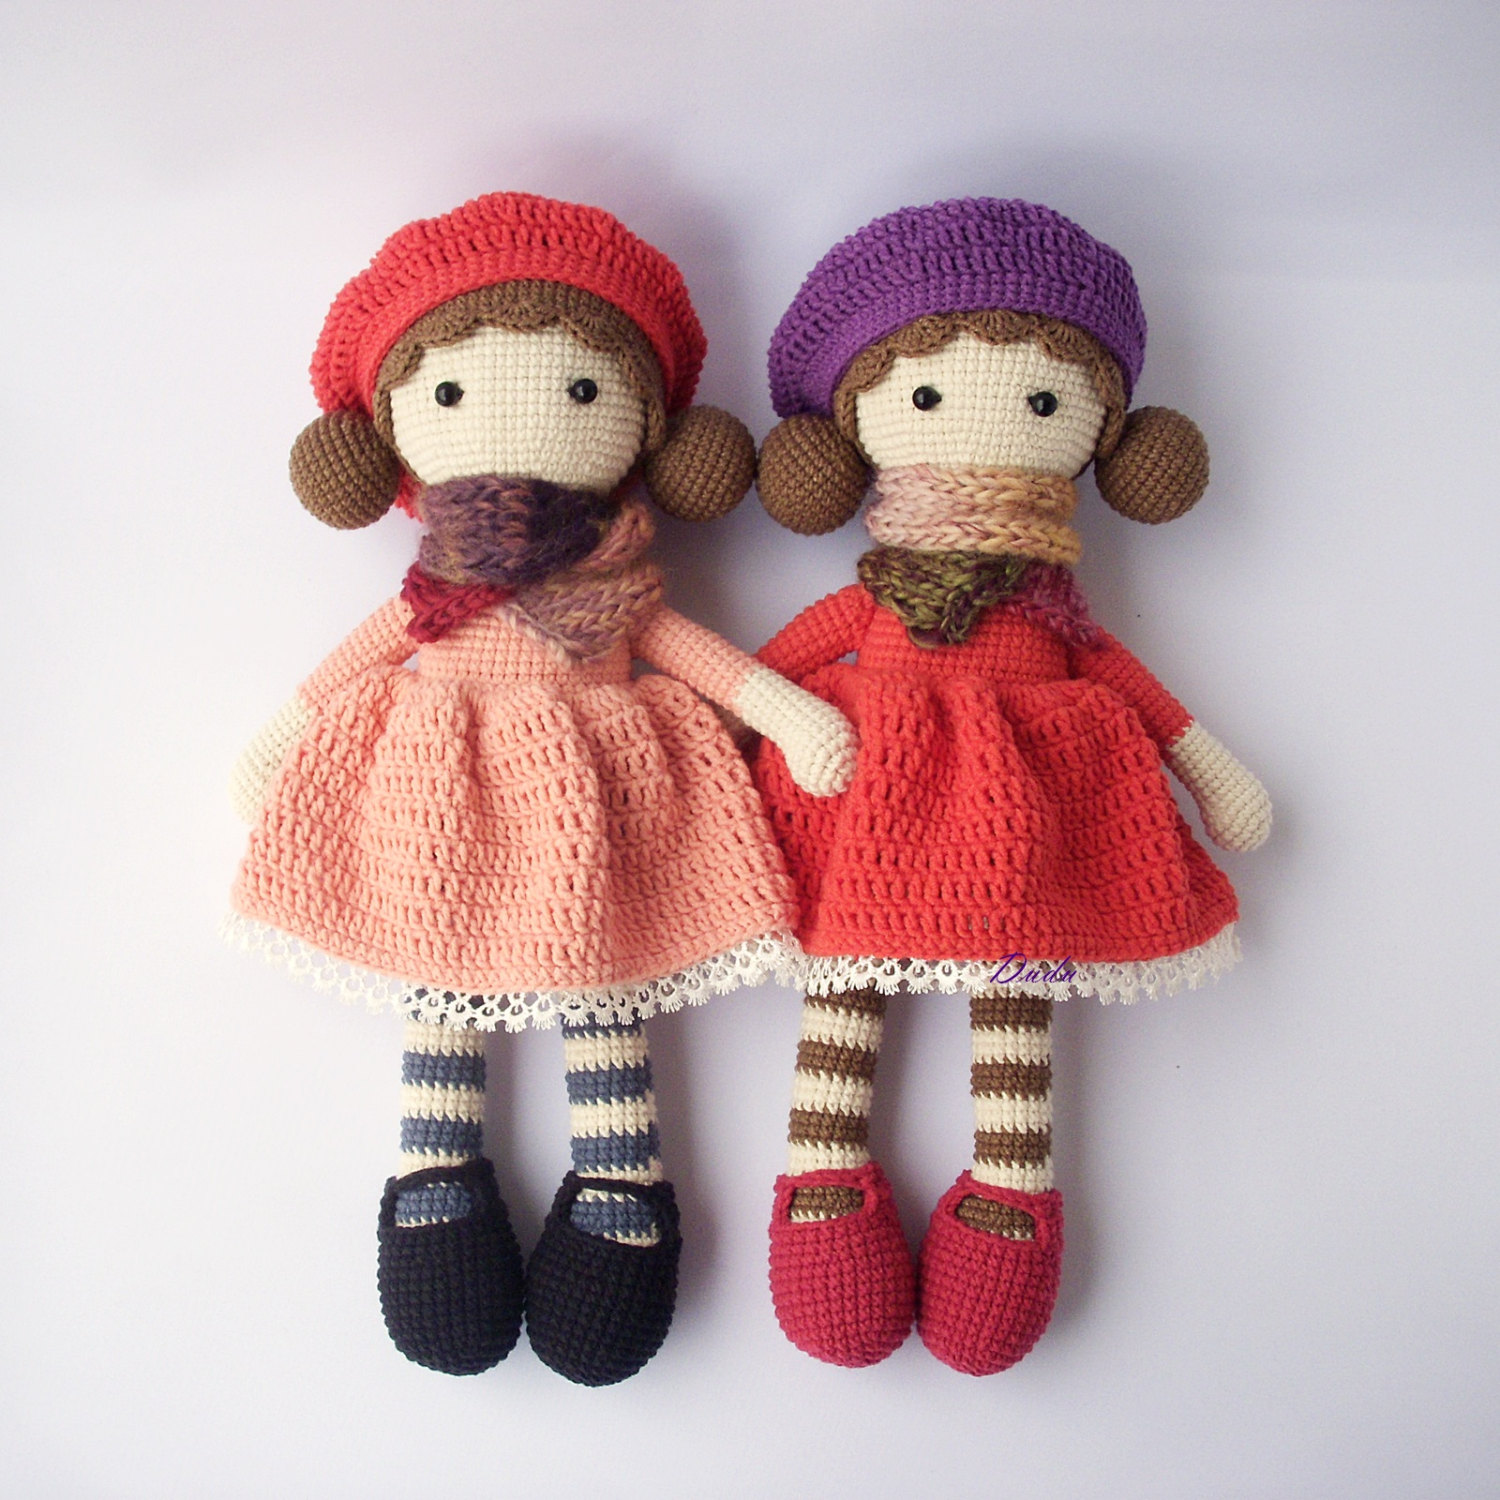 Crochet doll – Colorful Crochet doll for Babies – thefashiontamer.com